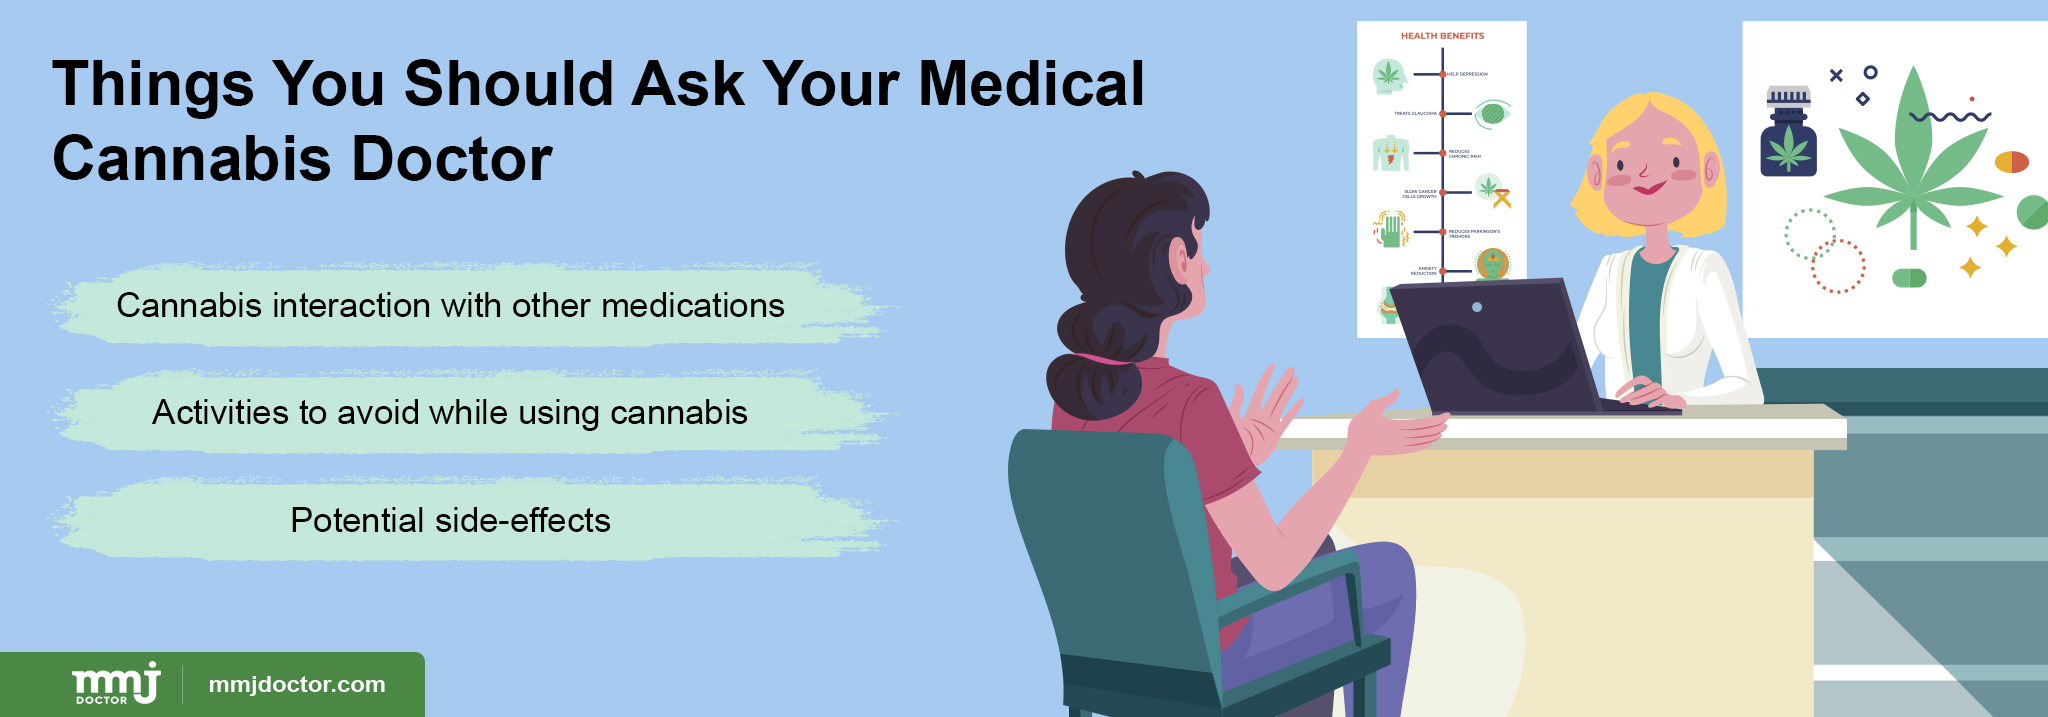 Things to ask cannabis doctor